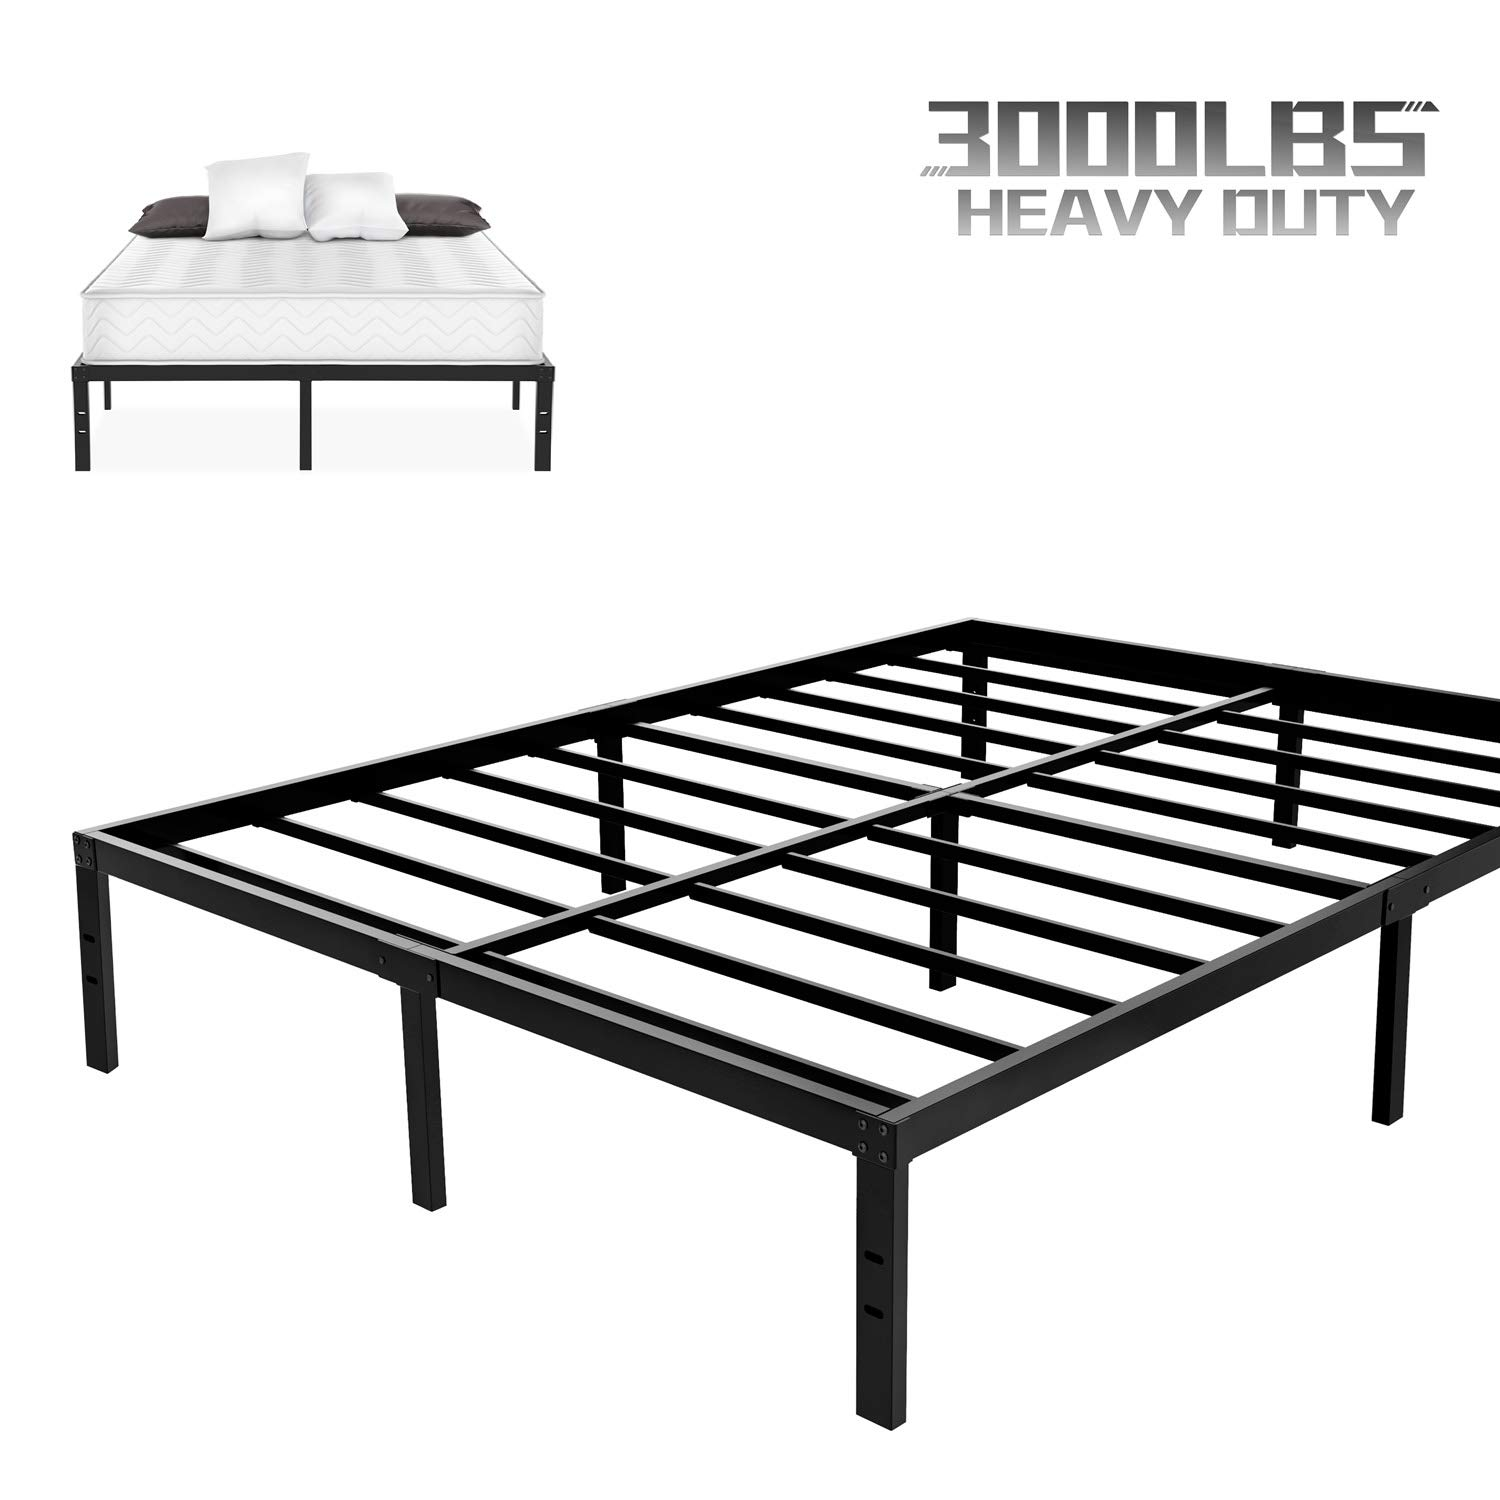 NOAH MEGATRON Heavy Duty Queen Platform Bed Frame, Slatted Bed Base 14 Inch Mattress Foundation Bed Frame,12 Inch Under-Bed Storage,No Box Spring Needed Queen